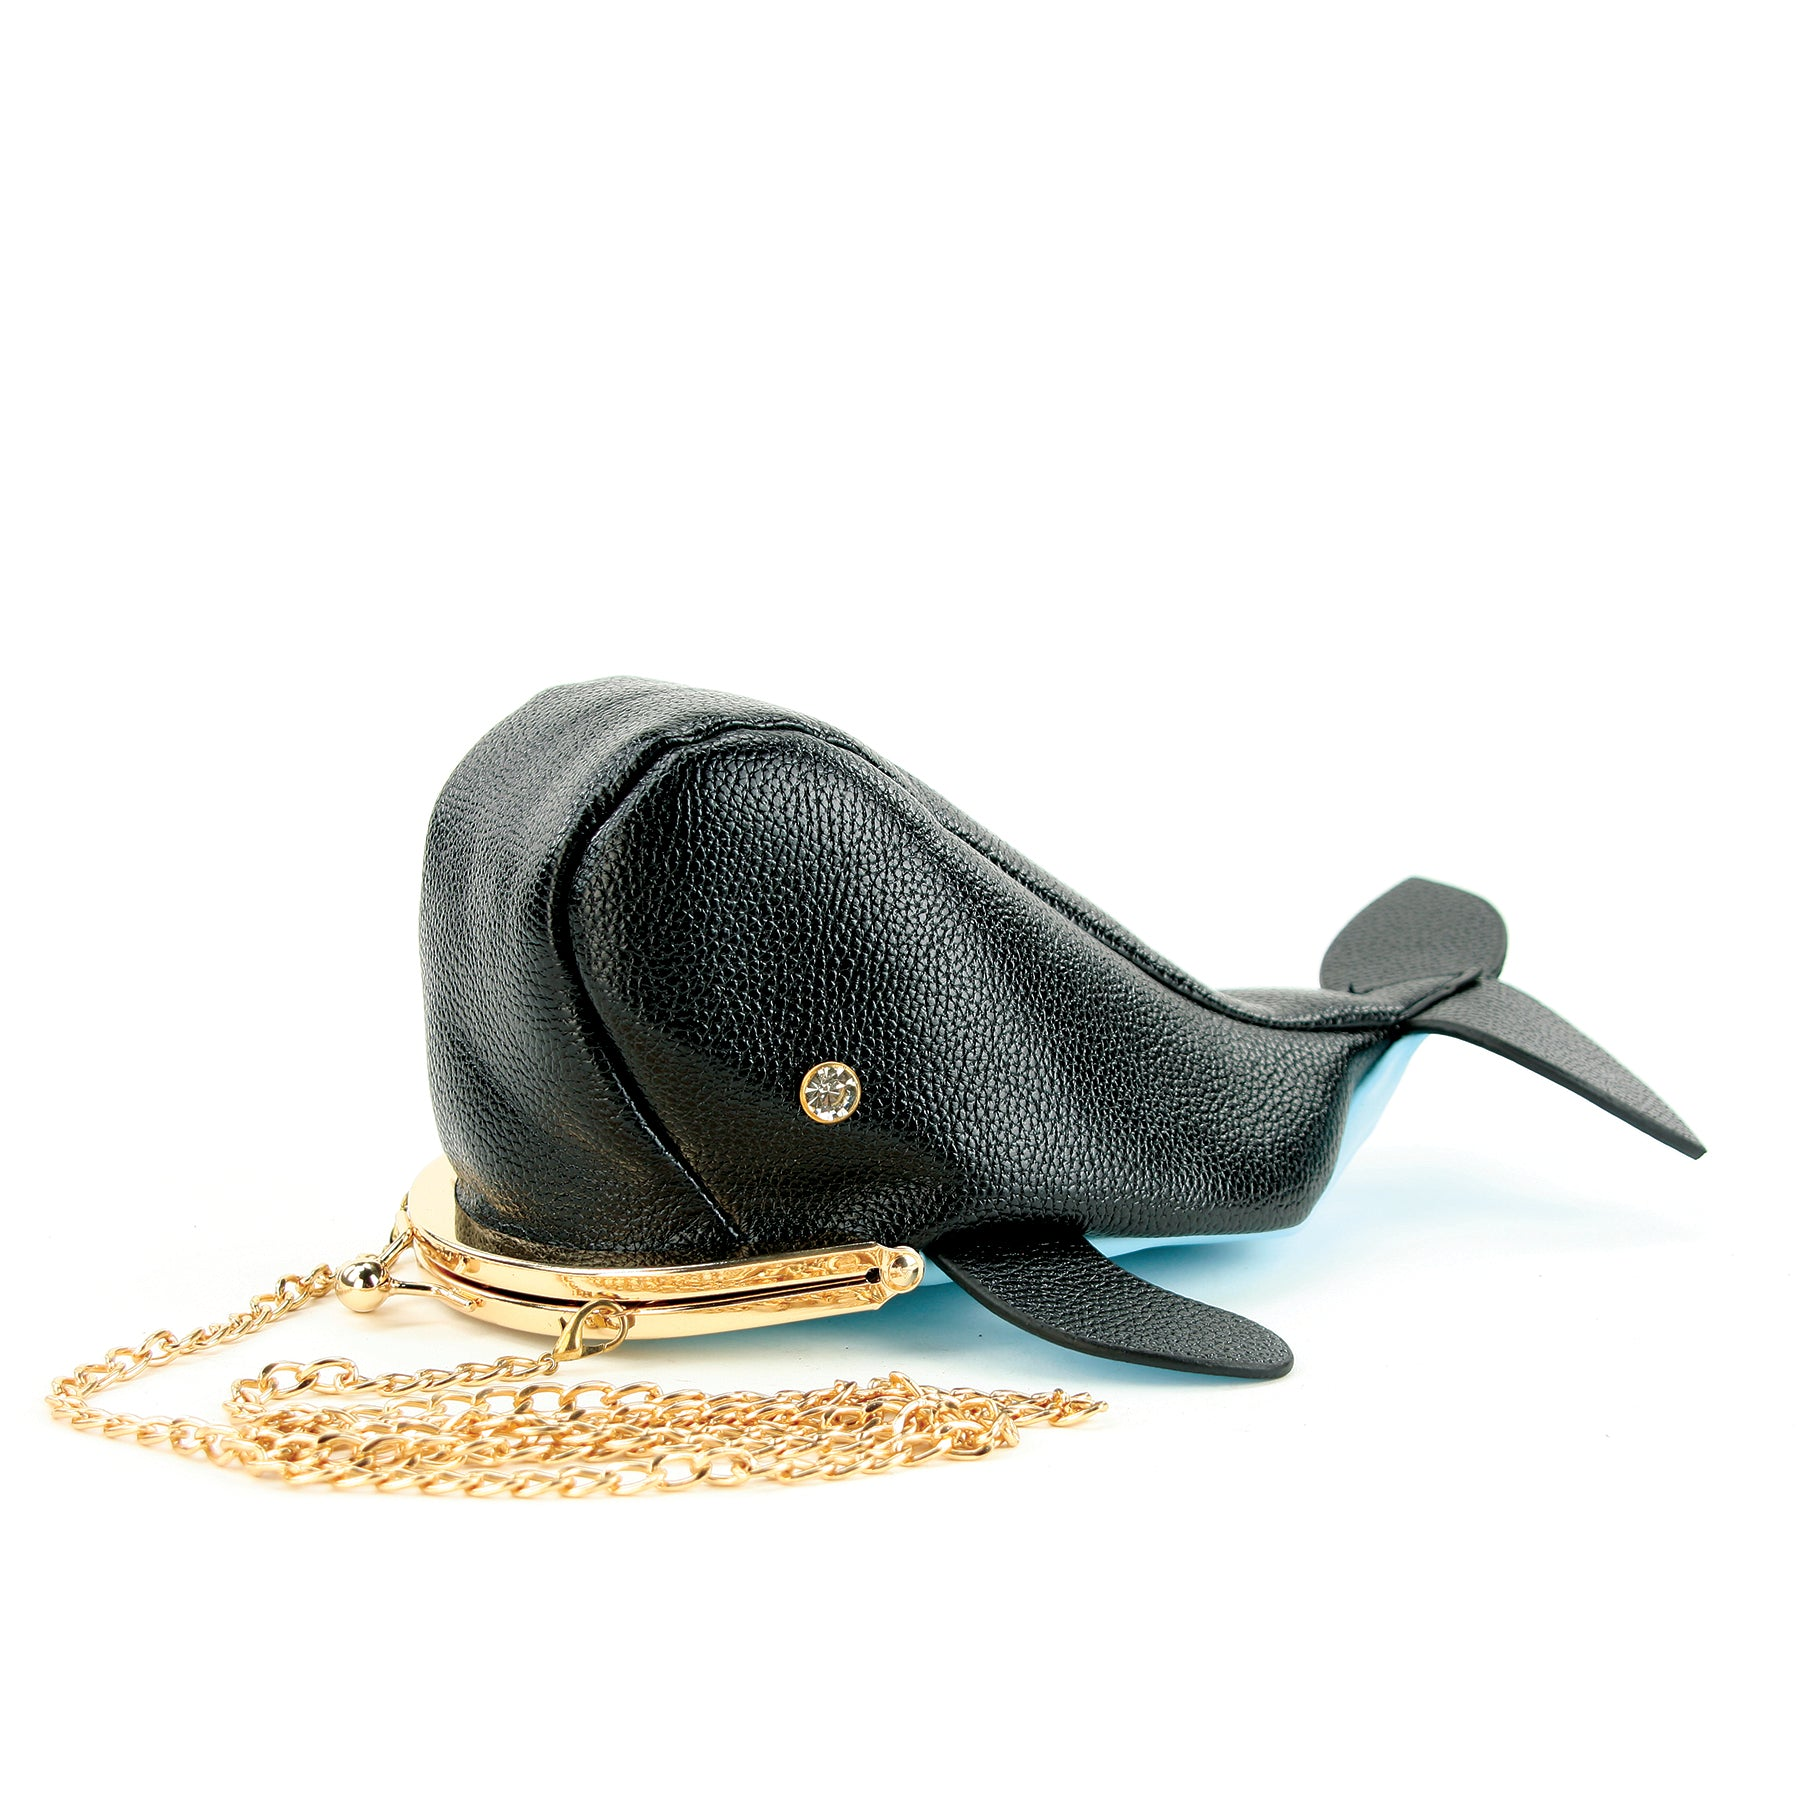 Kisslock Whale Cross Body Bag in Vinyl Material side view